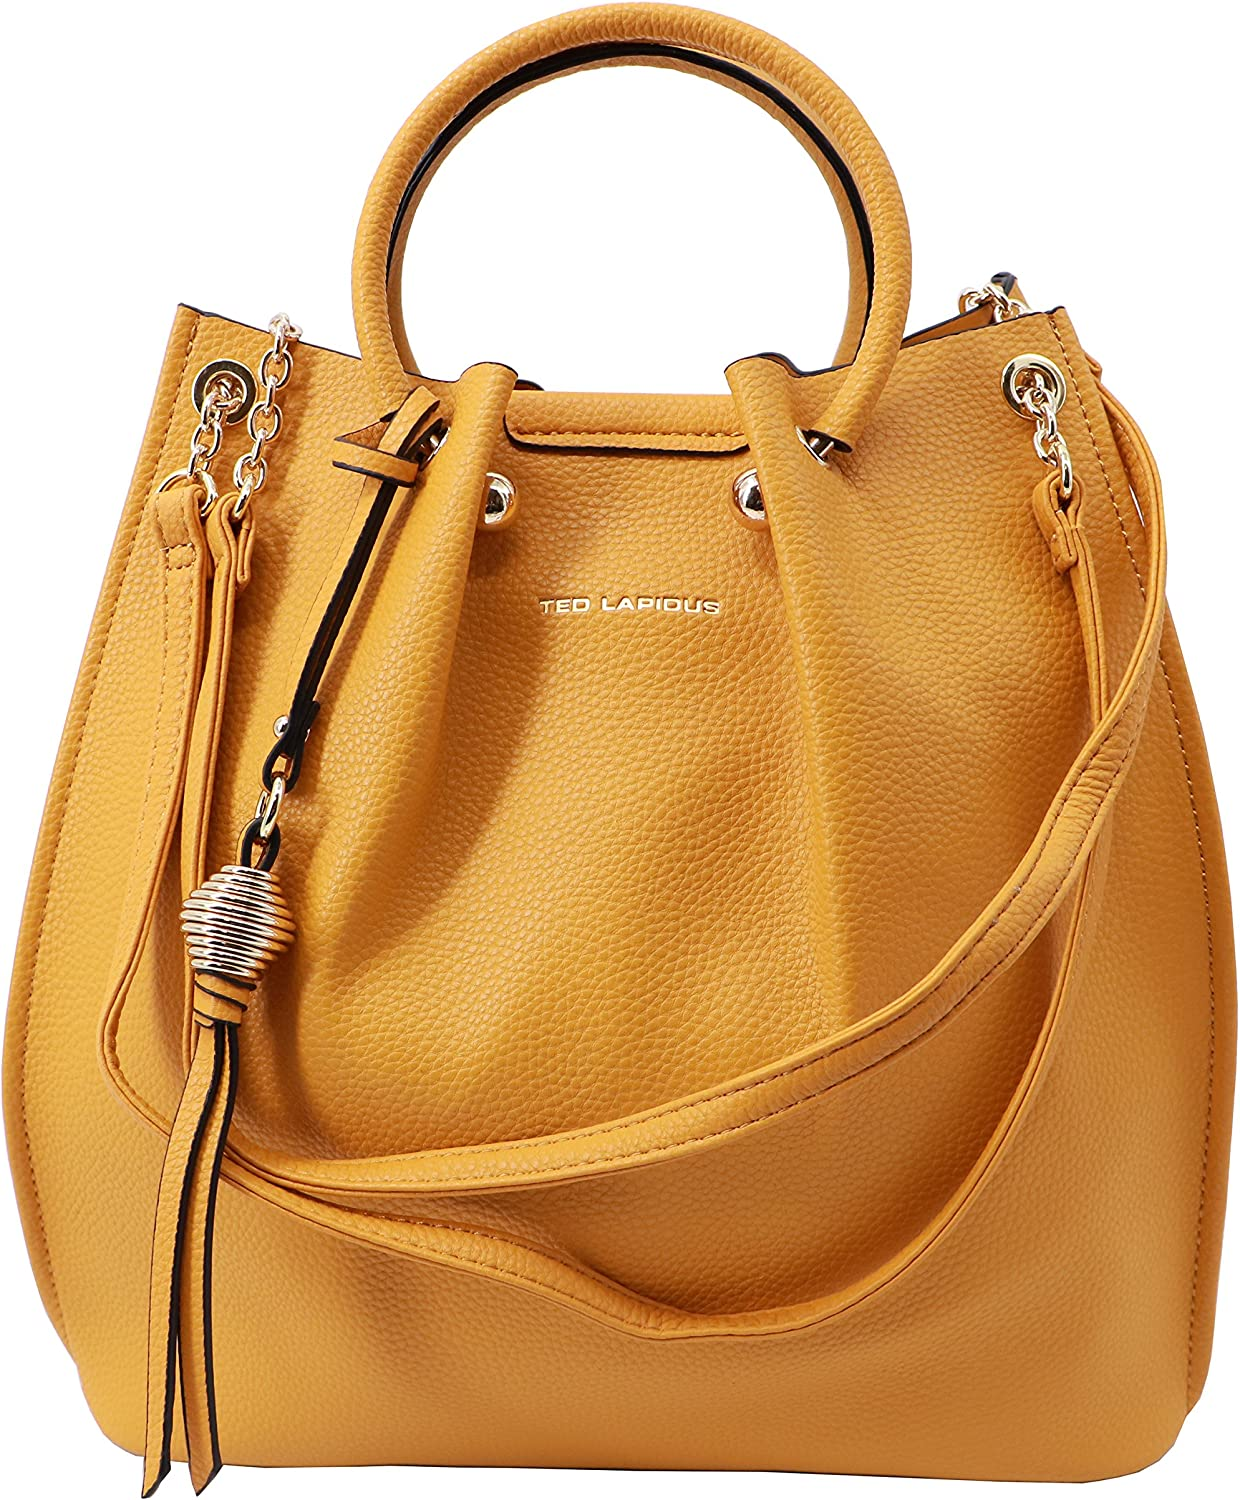 2 in 1 women's handbag Ted Lapidus Gretel 8921 Synthetic